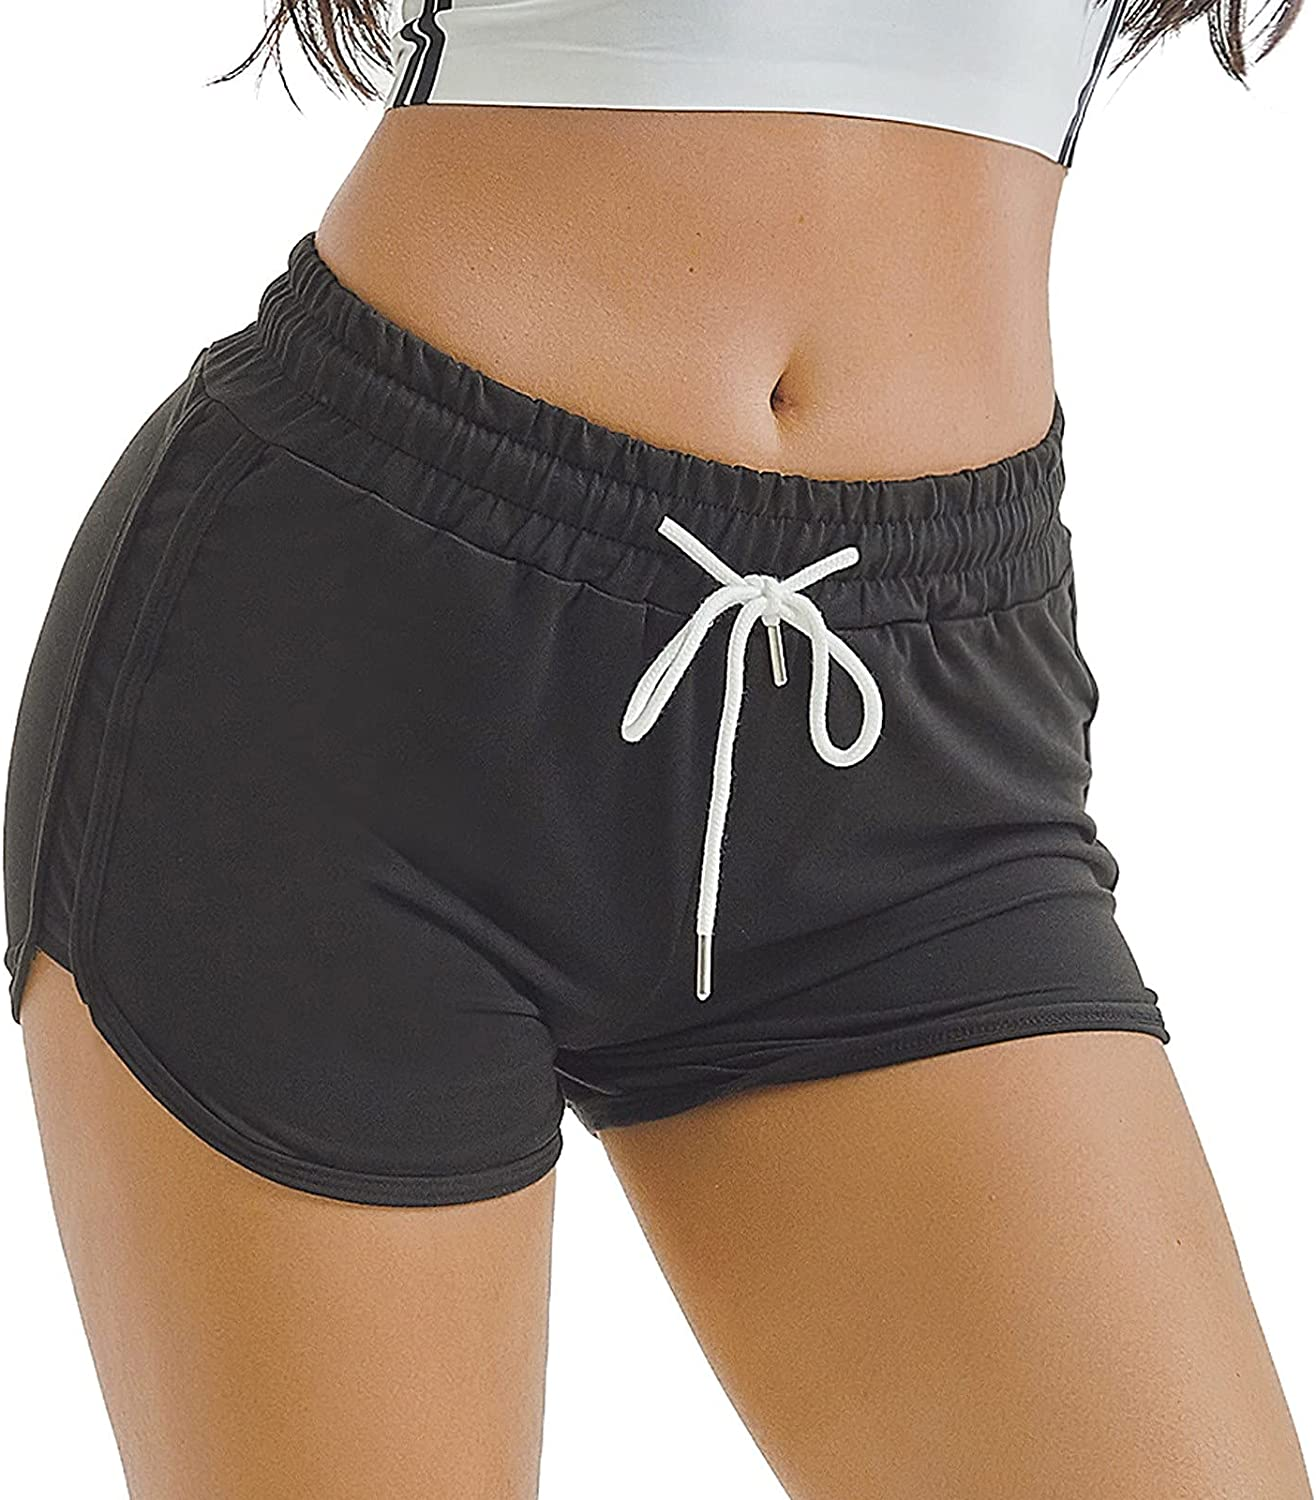 KEJINKCSEE Women Sports Max 90% OFF Shorts Yoga Sale Special Price Fitness Casual Running Short